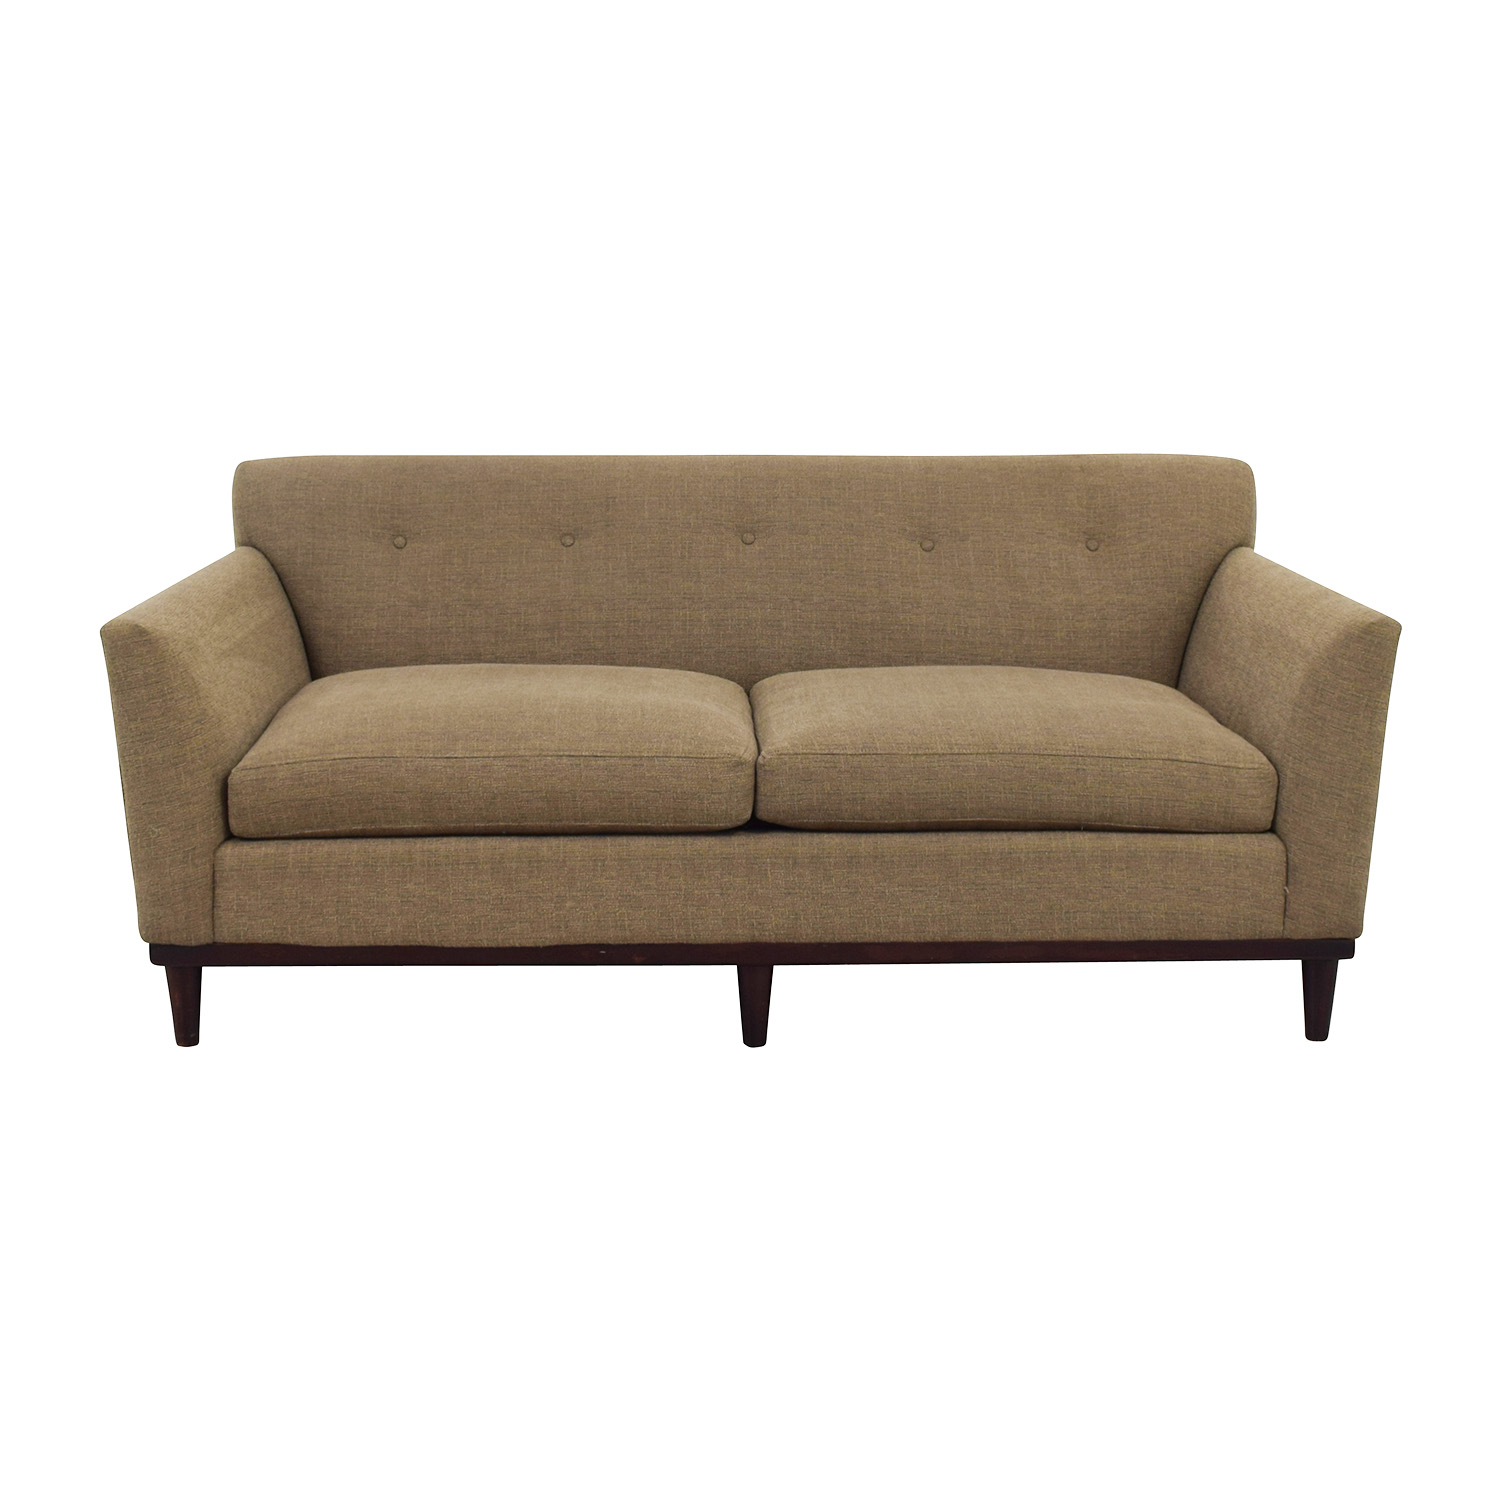 Brown tweed sofa benchcraft tanacra contemporary sofa for Leather and tweed sofa